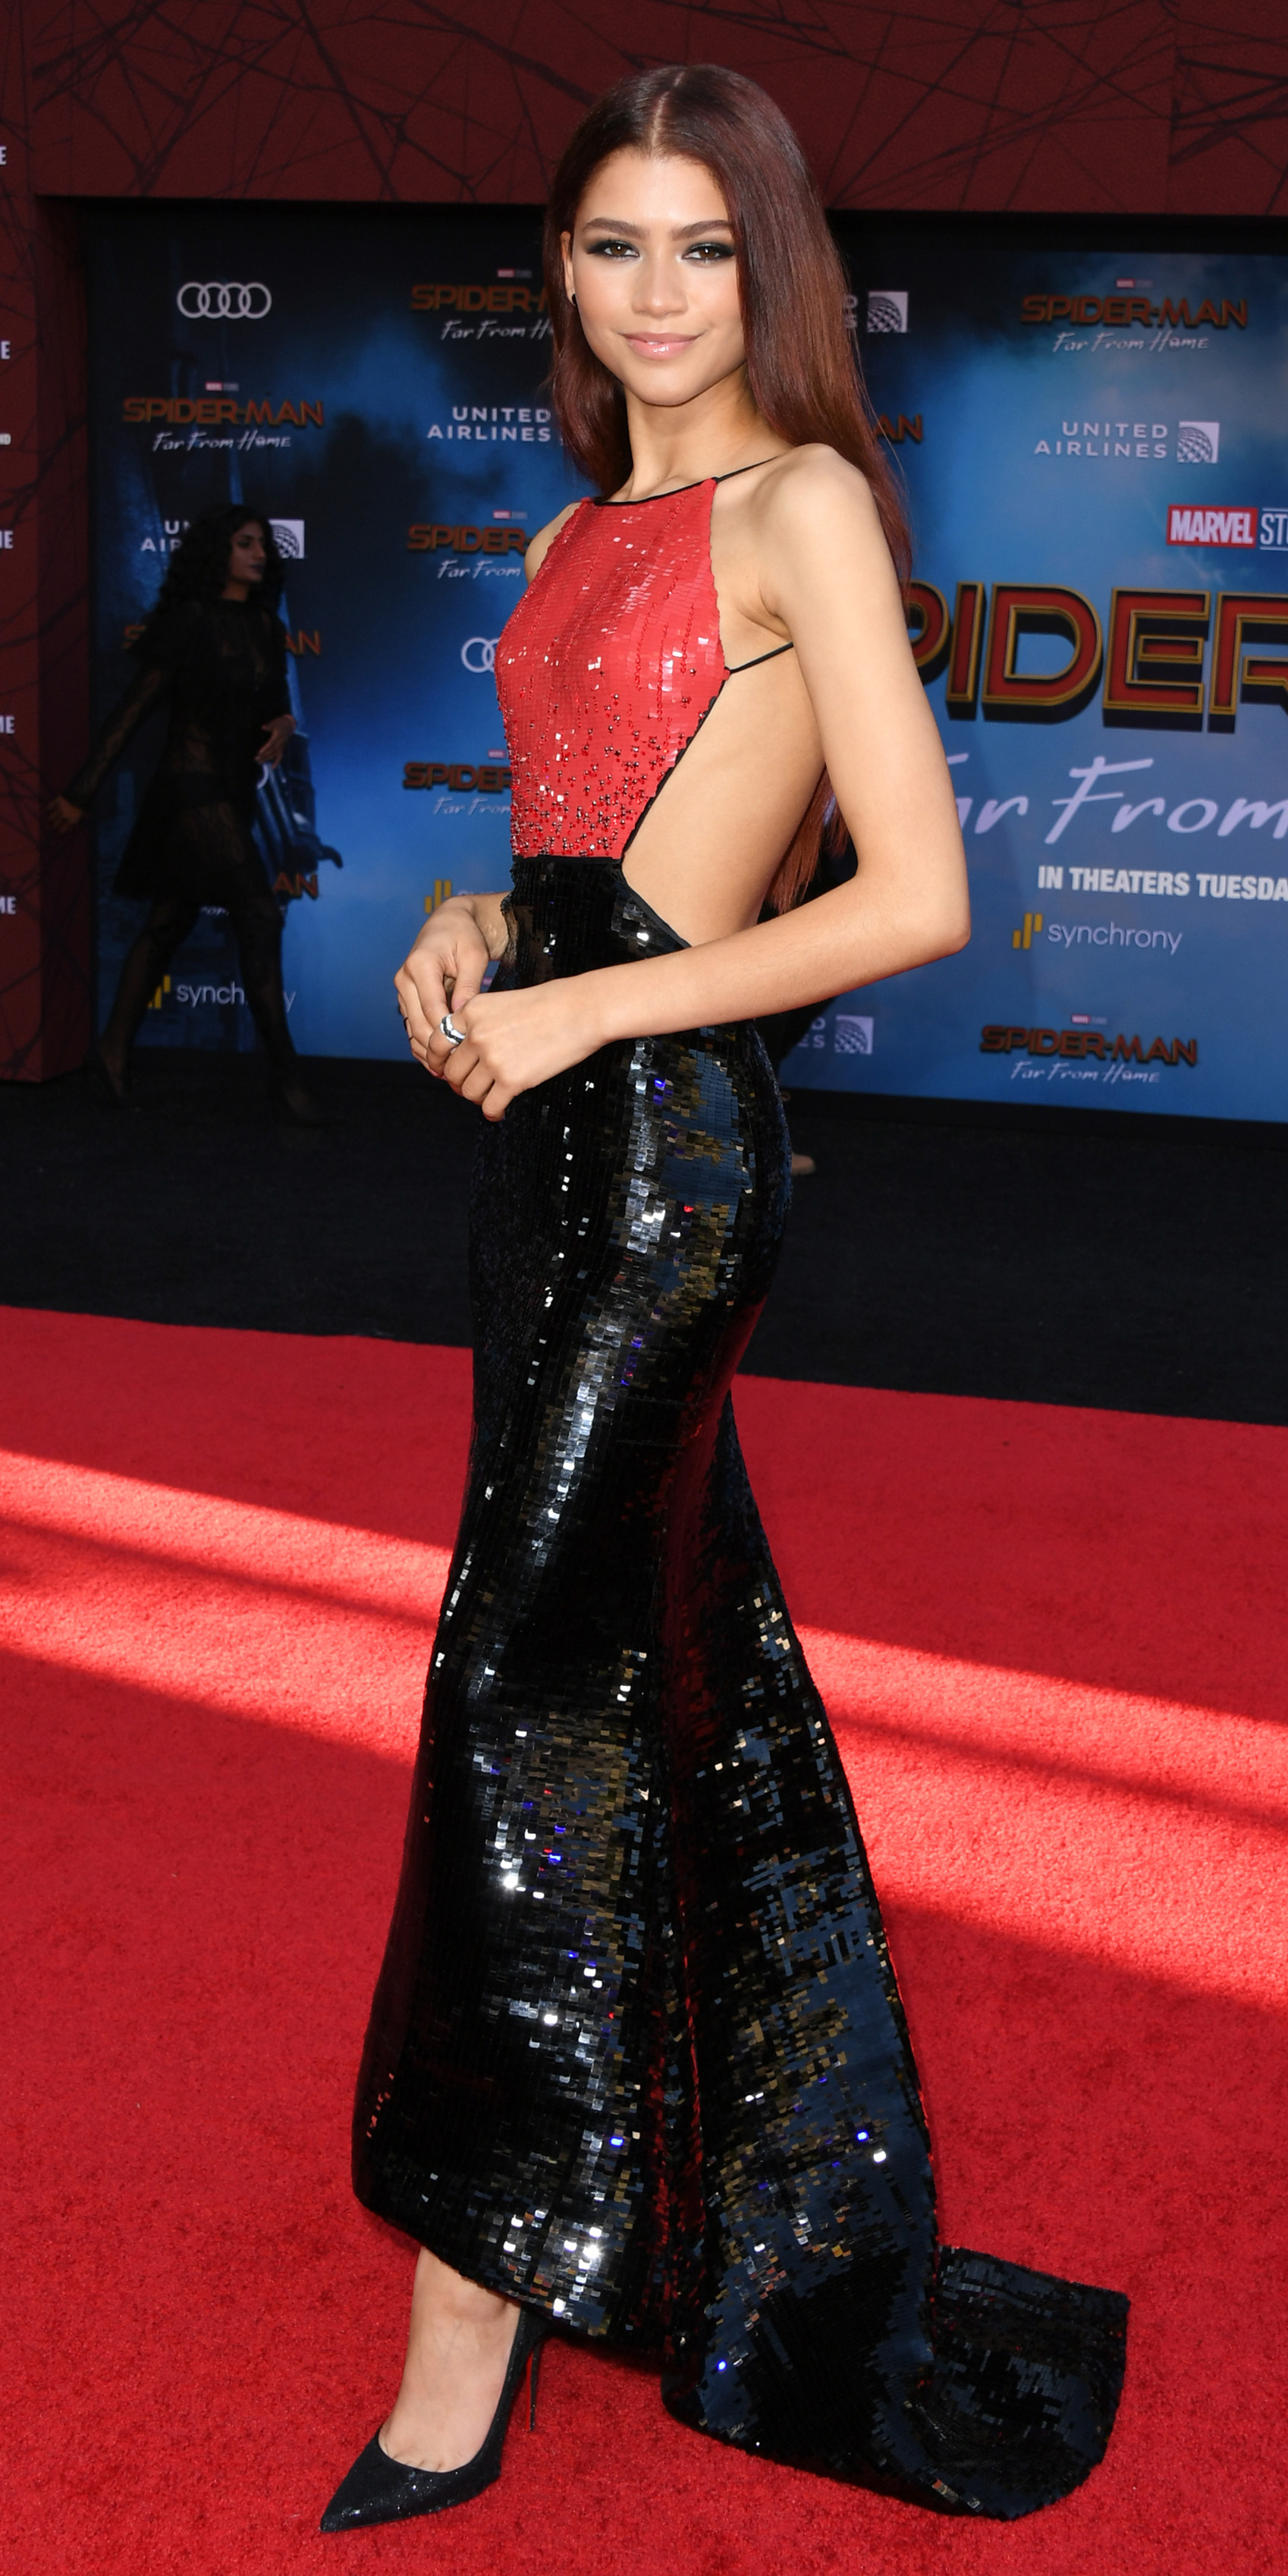 "HOLLYWOOD, CALIFORNIA - JUNE 26: Zendaya attends the Premiere Of Sony Pictures' ""Spider-Man Far From Home"" at TCL Chinese Theatre on June 26, 2019 in Hollywood, California. (Photo by Jon Kopaloff/FilmMagic)"